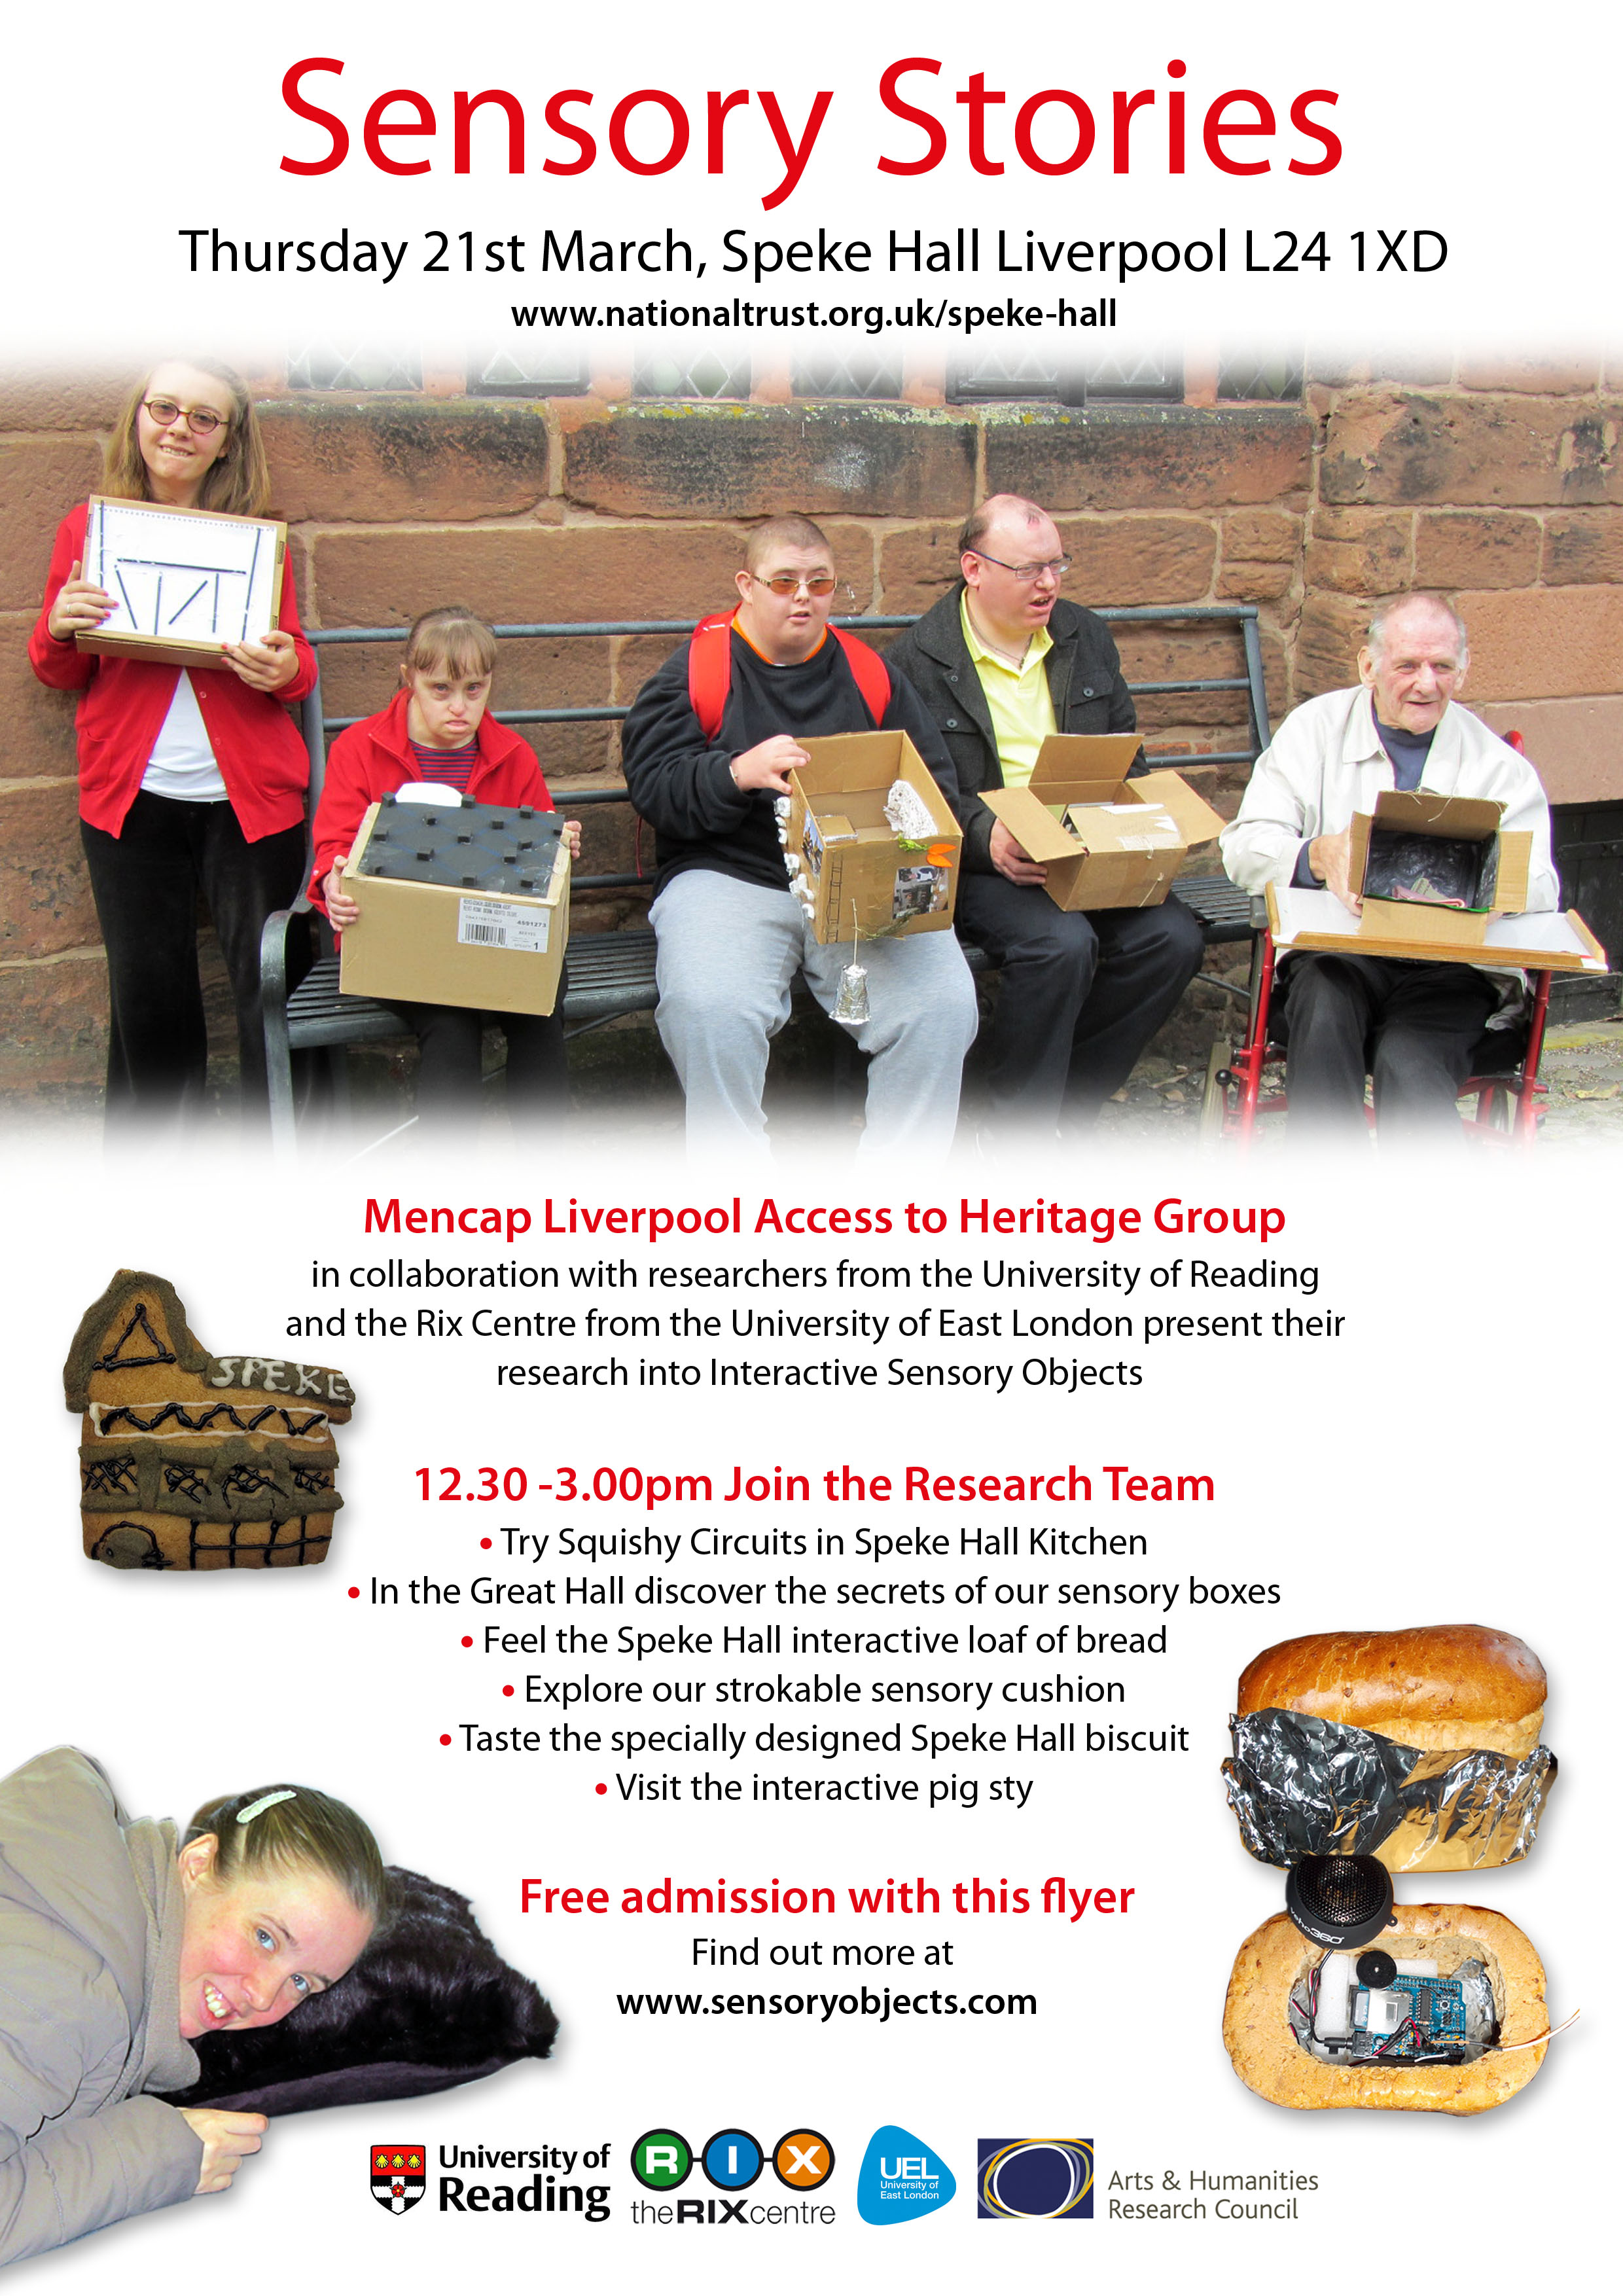 Sensory Objects flyer 21st March